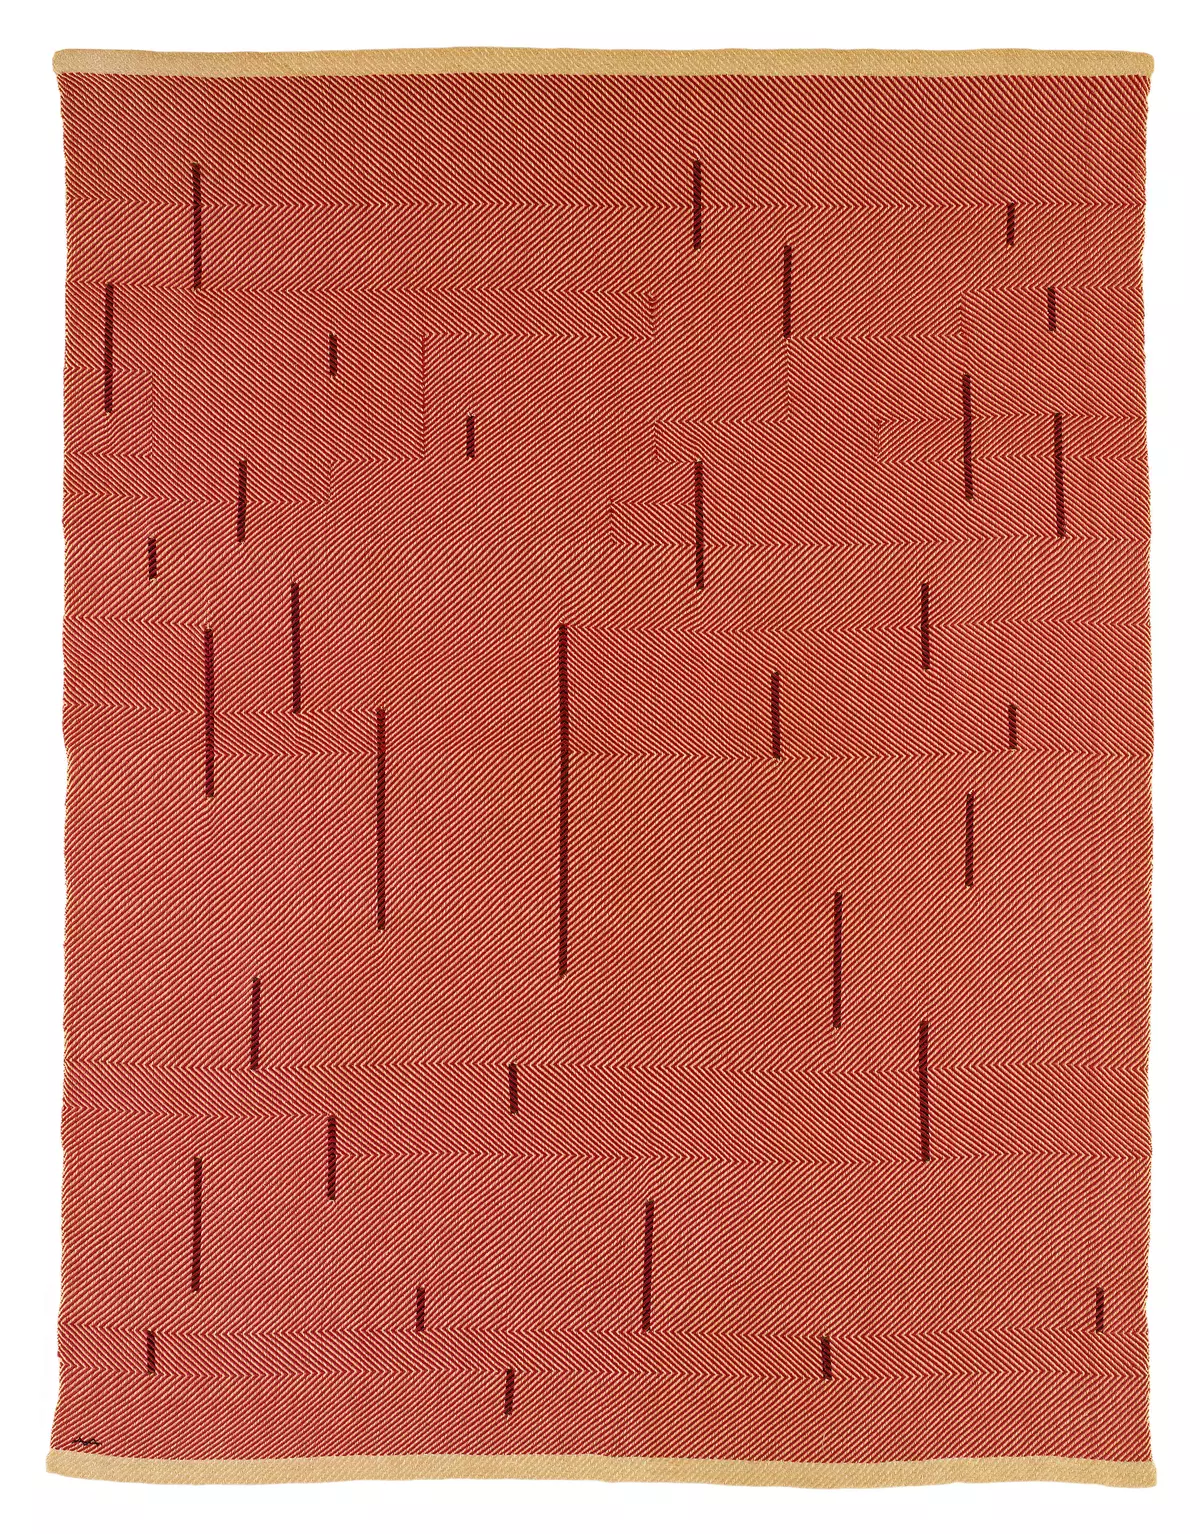 With Verticals, 1946. Red cotton and linen 1549 x 1181 mm.